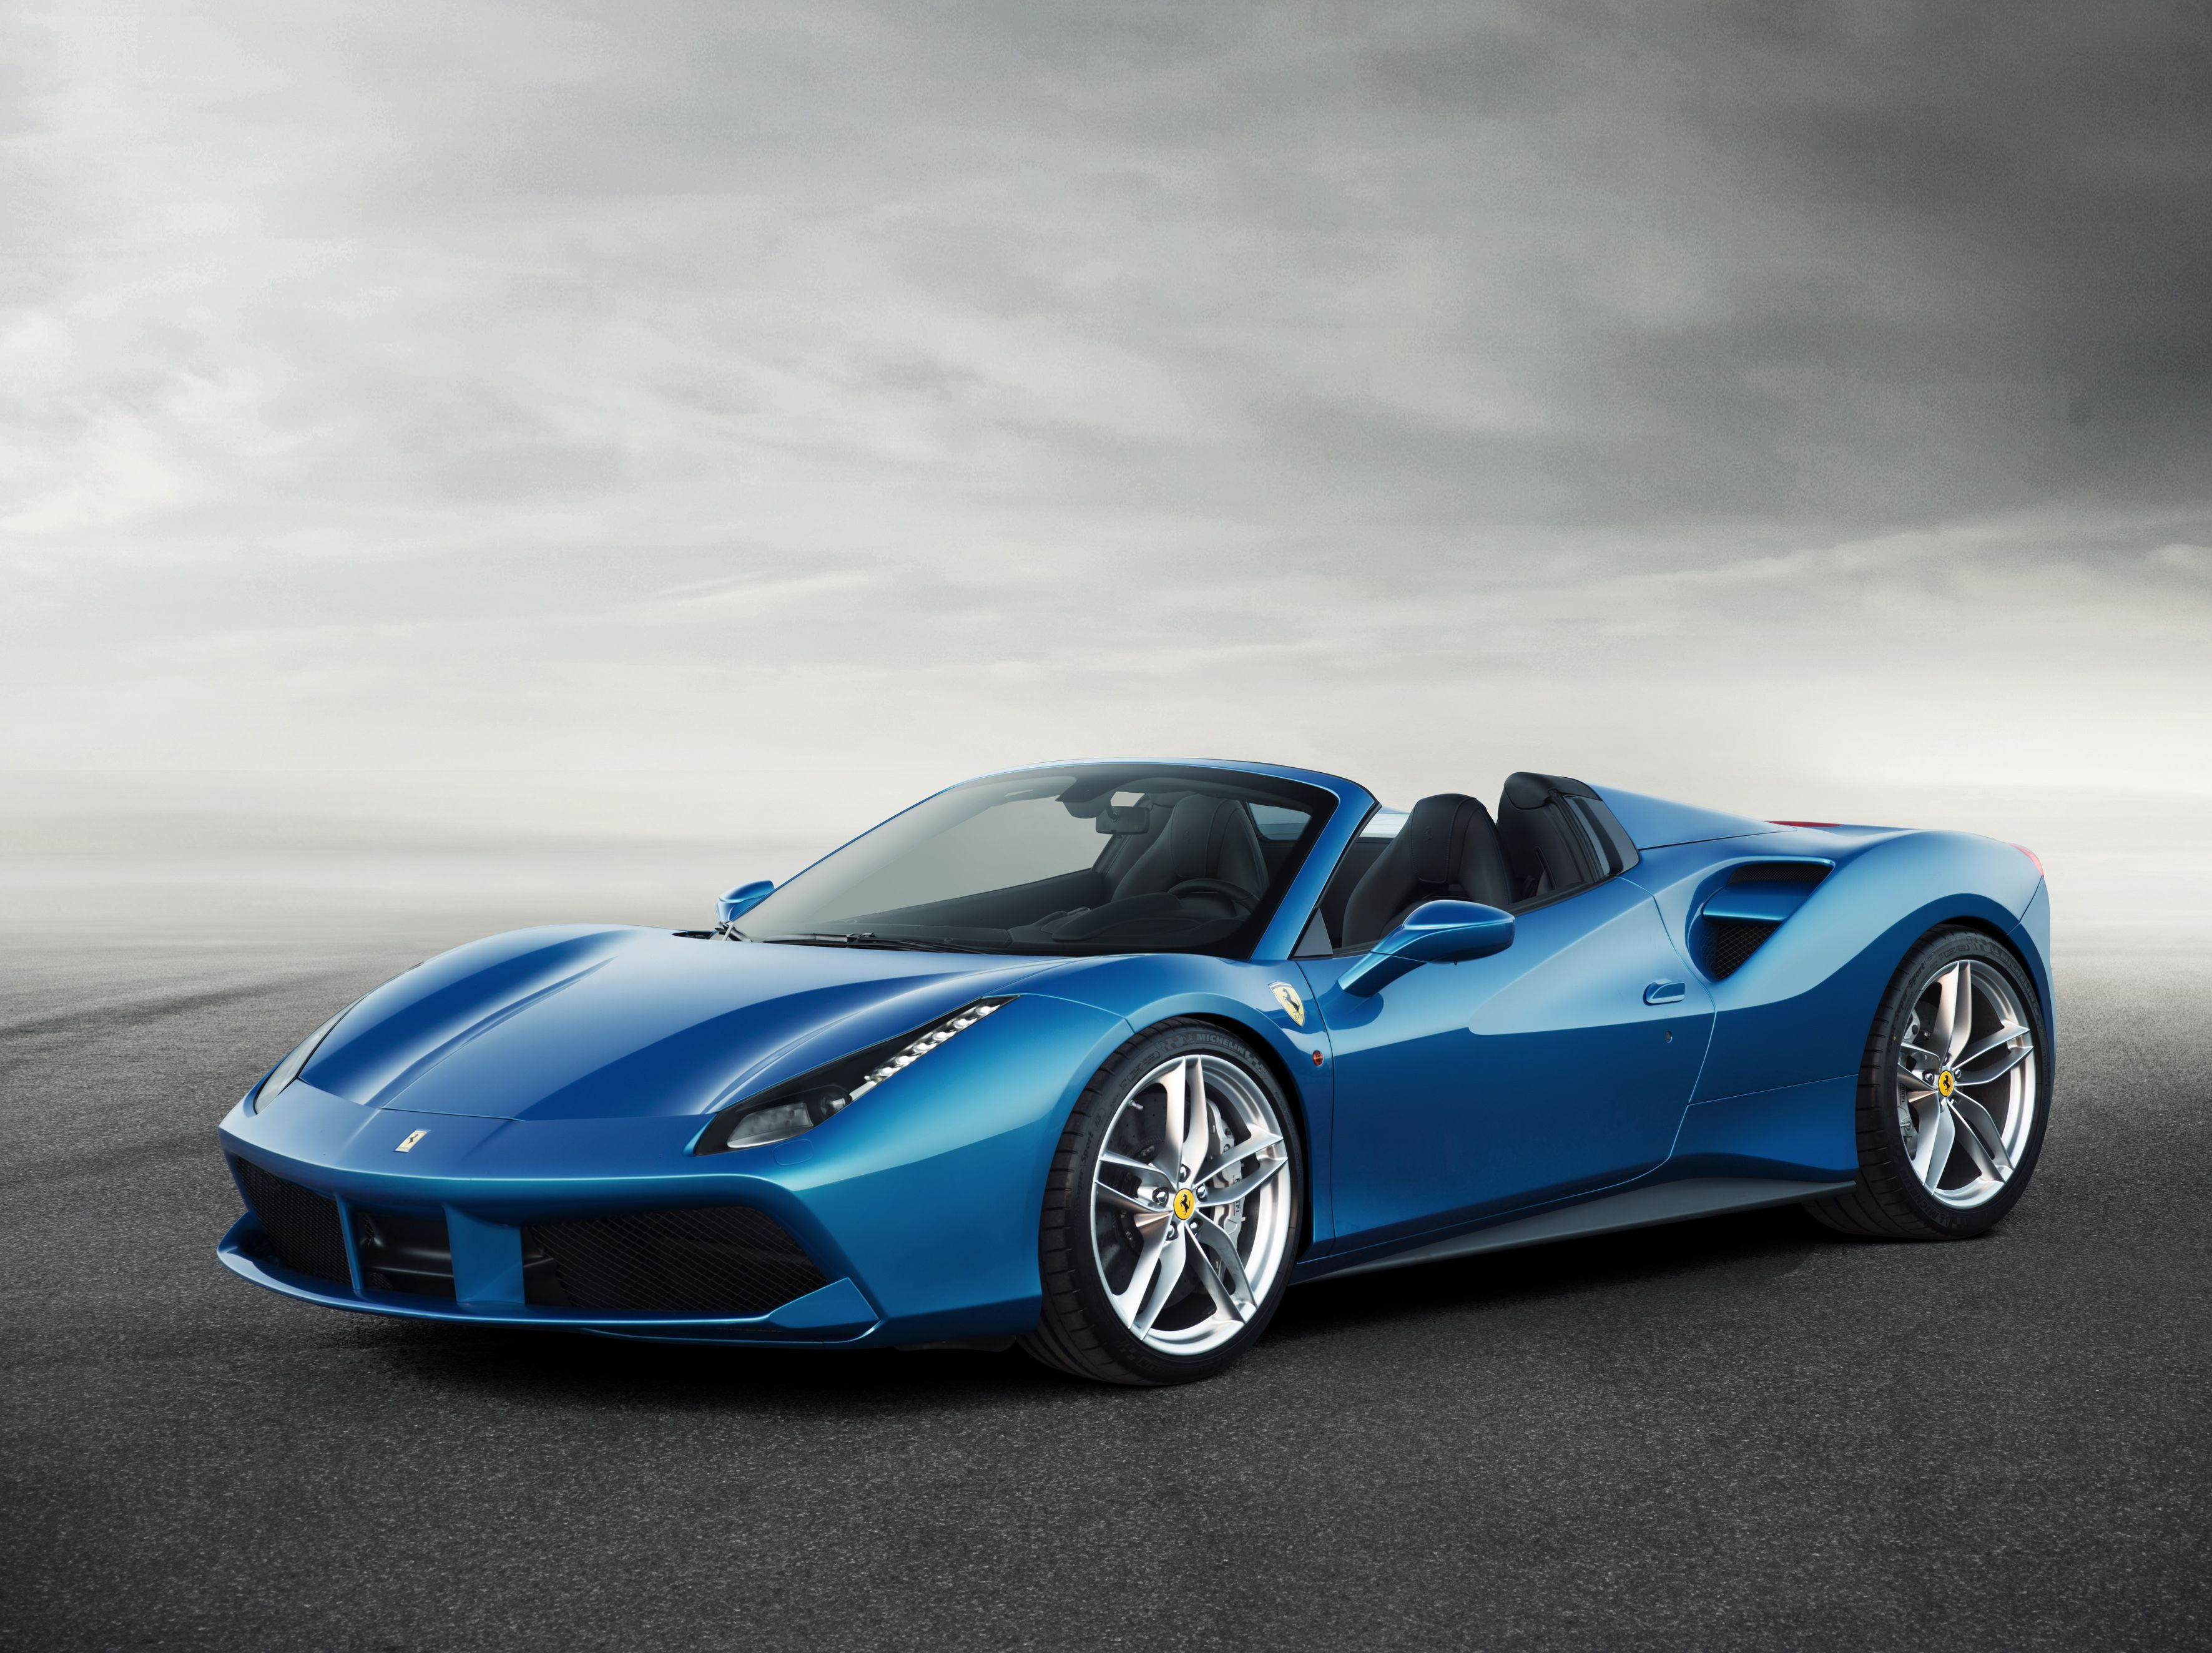 Ferrari 488 Spider Wallpapers Hd